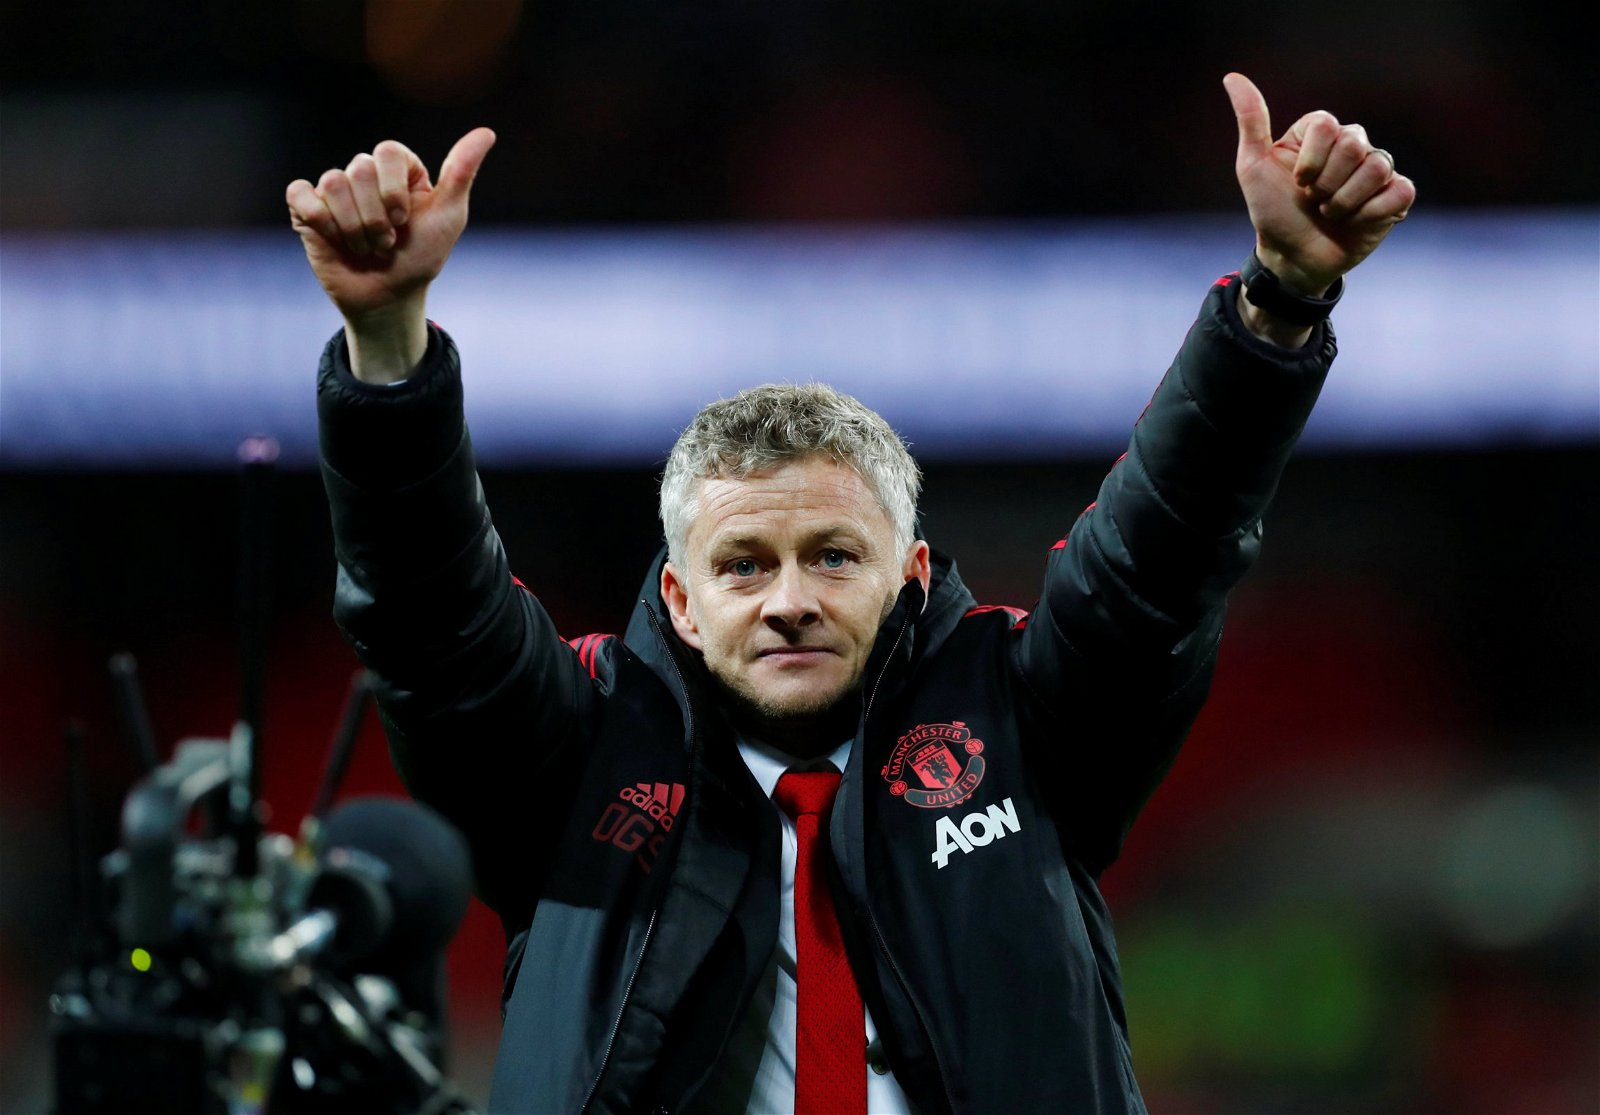 Ole Gunnar Solskjaer with his thumbs up to Manchester United fan - Opinion: Rotation option? Super-sub? Man Utd star's future under Solskjaer unclear